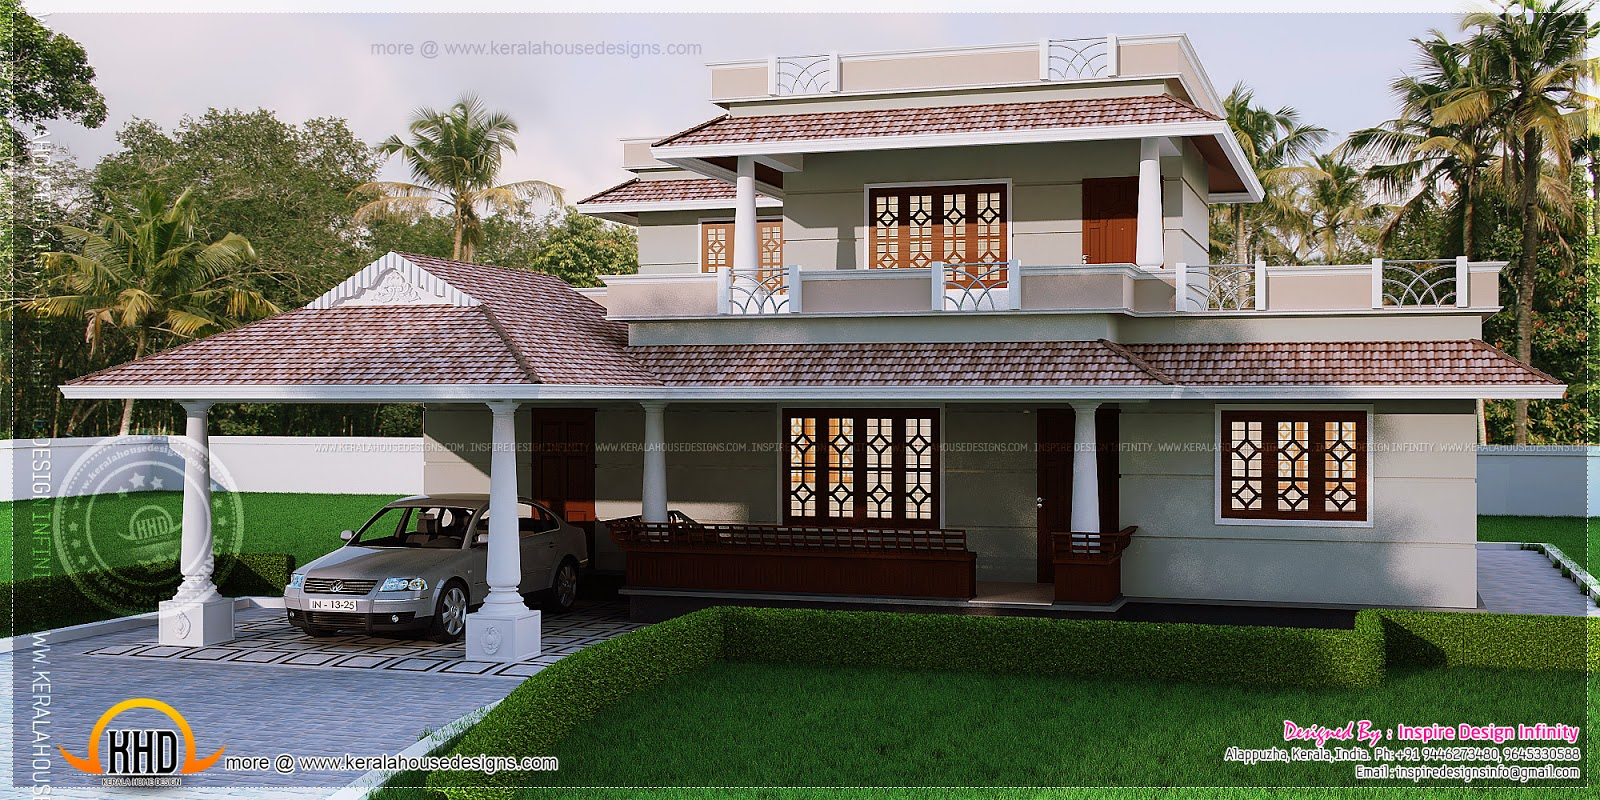 4 bedroom kerala style house in 300 square yards kerala for 300 sq ft house plans in india